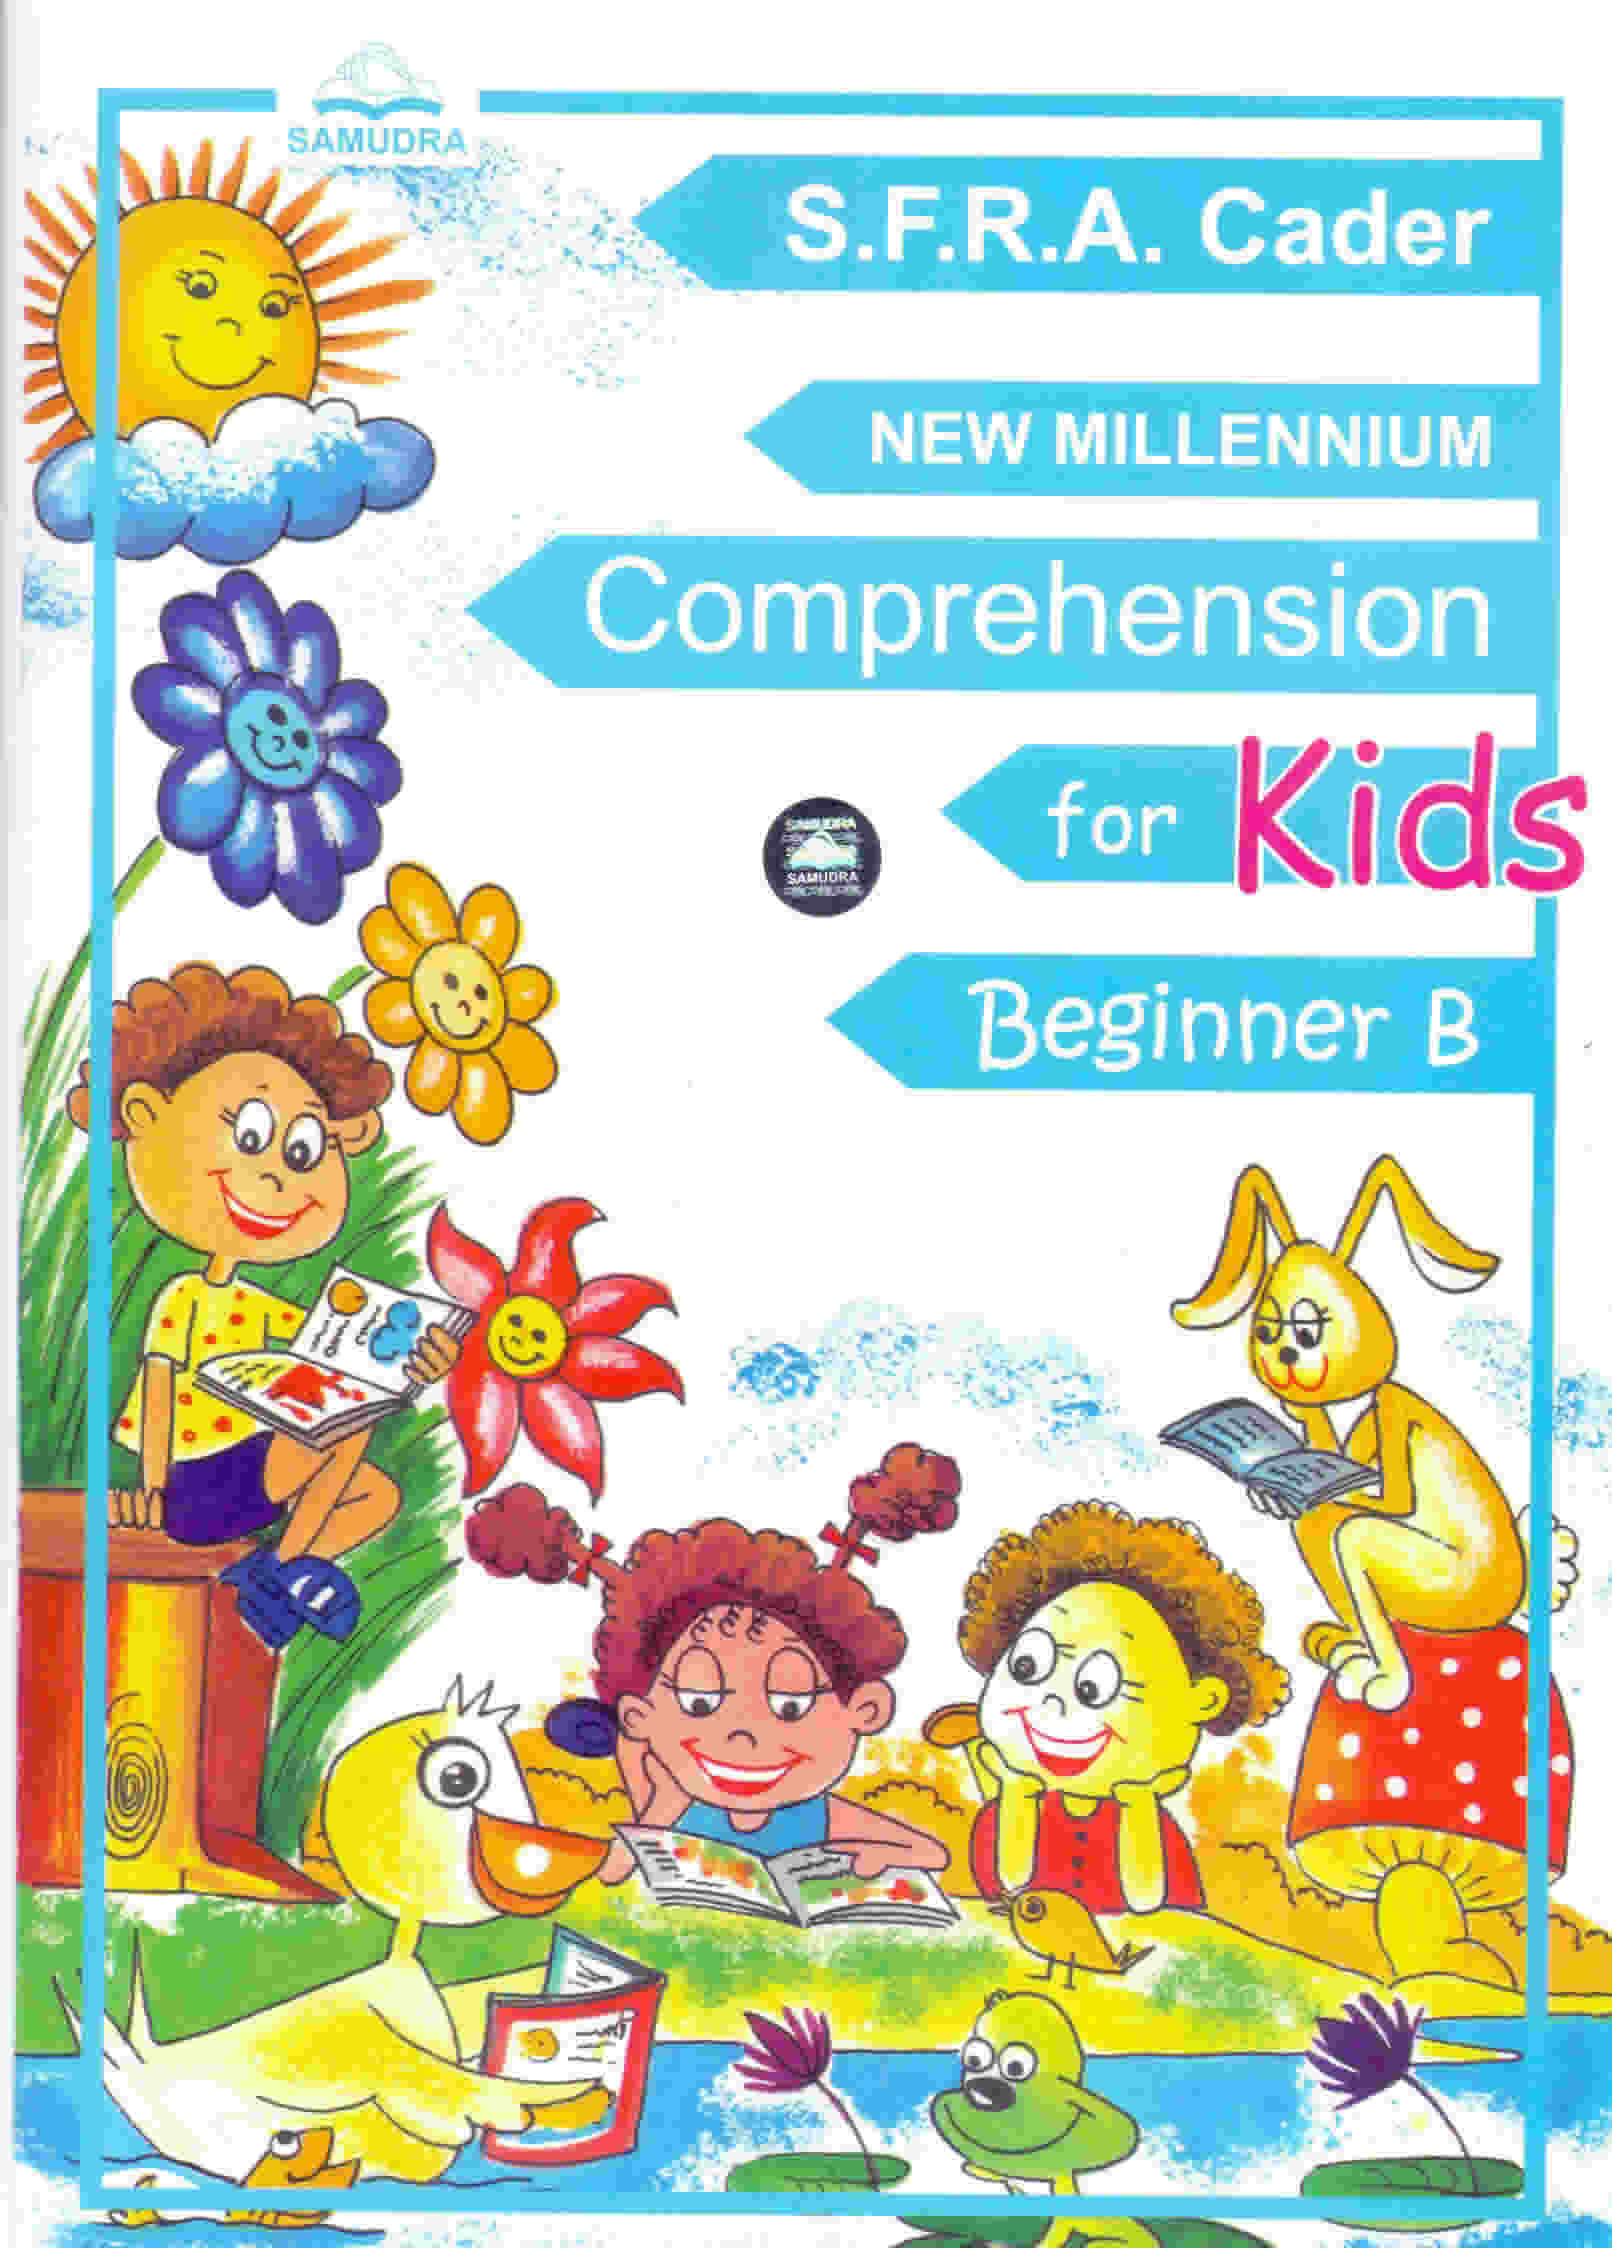 NEW MILLENNIUM COMPREHENSION FOR KIDS BEGINNER B